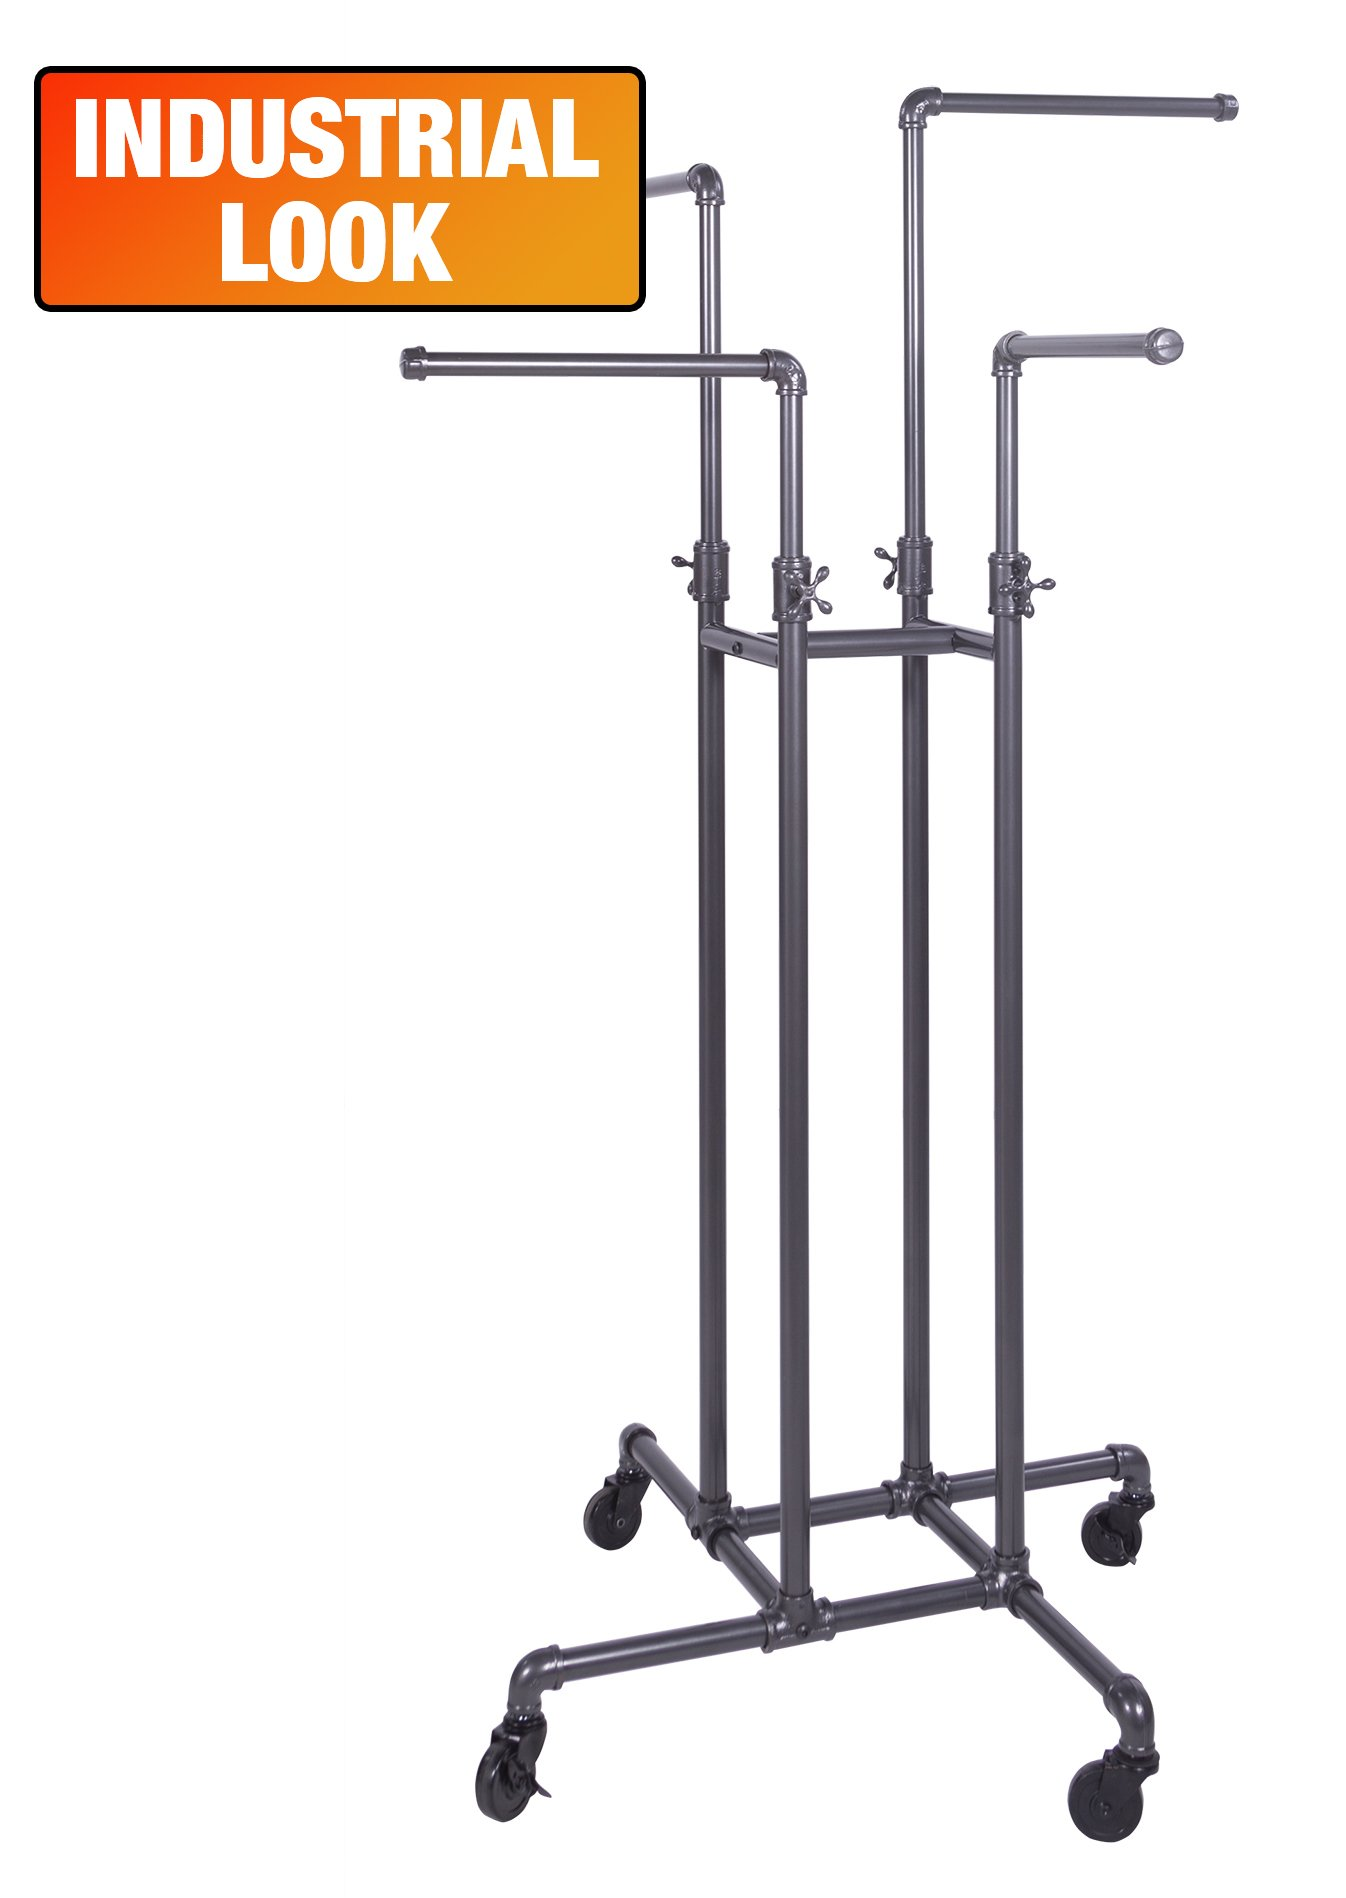 Clothing Rack Econoco - Heavy Duty Pipeline Adjustable, 4 Way Rack, Plumbing Pipe Clothes Rack, Anthracite Grey